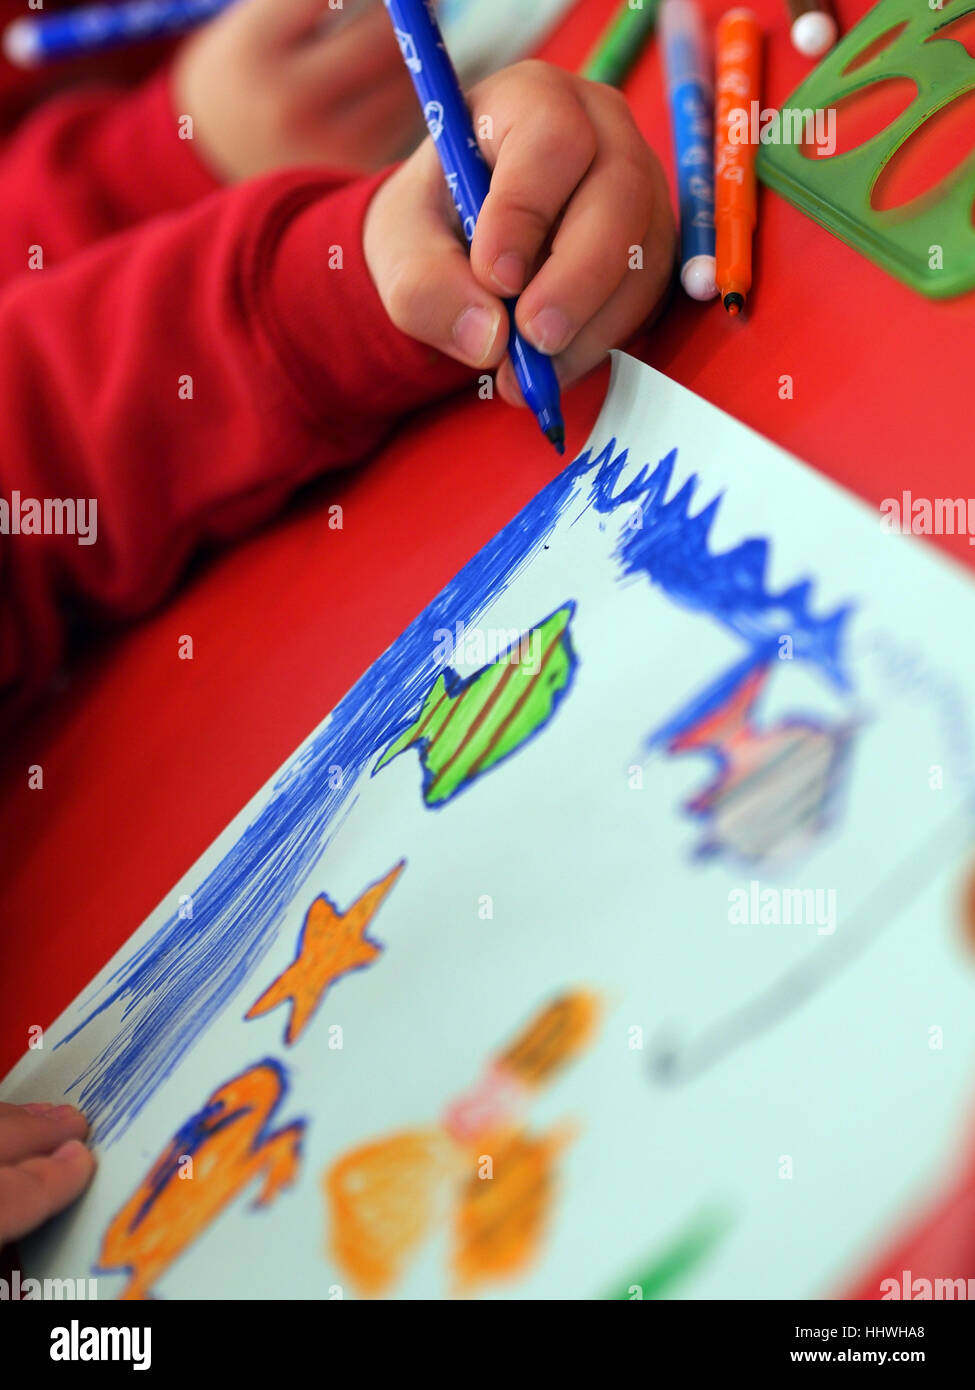 Child Colouring Stockfotos & Child Colouring Bilder - Alamy